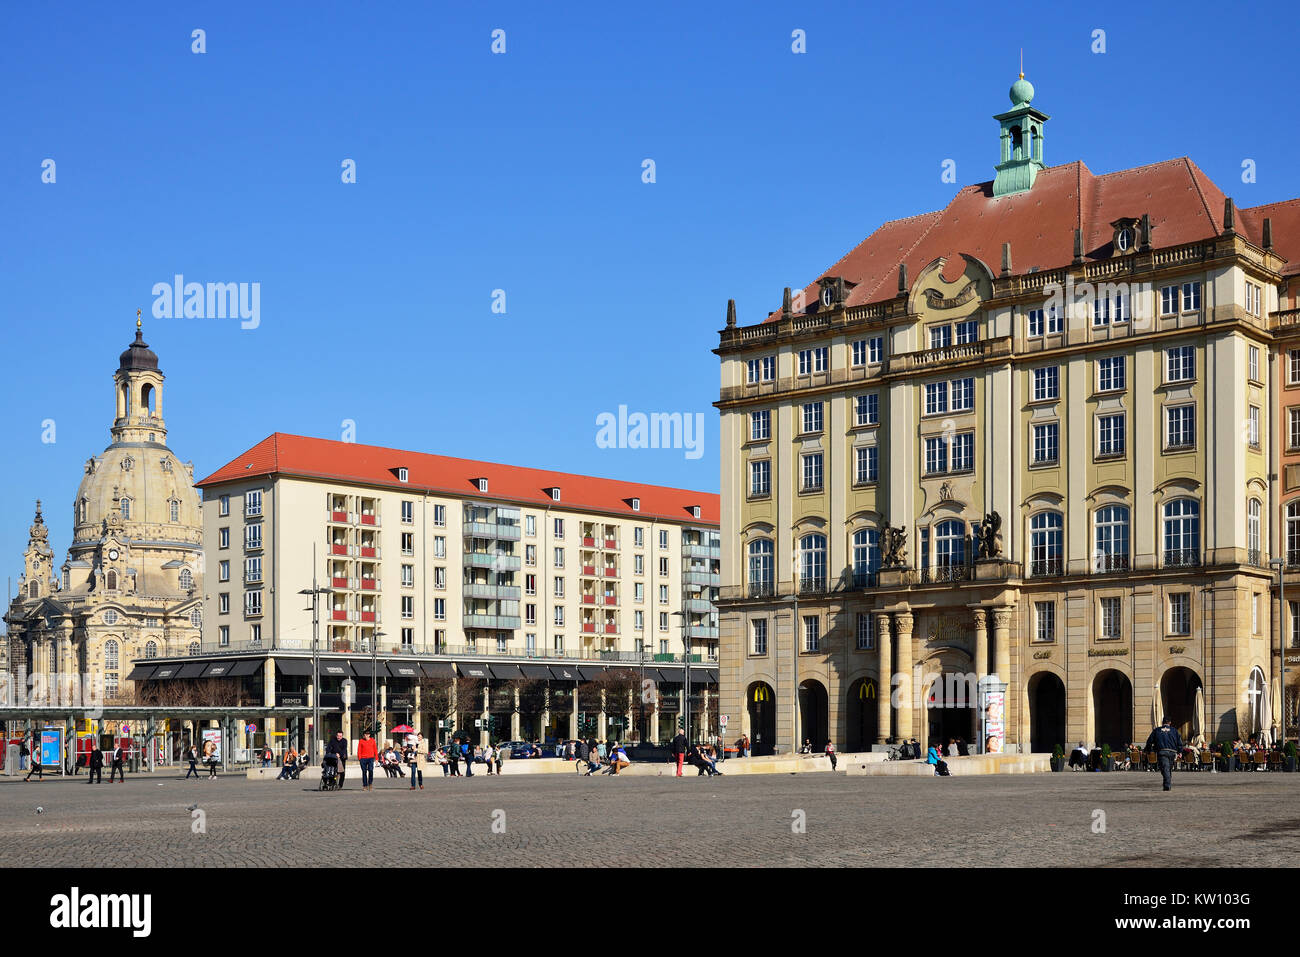 Dresden, house Old market and Church of Our Lady, Haus Altmarkt und Frauenkirche - Stock Image